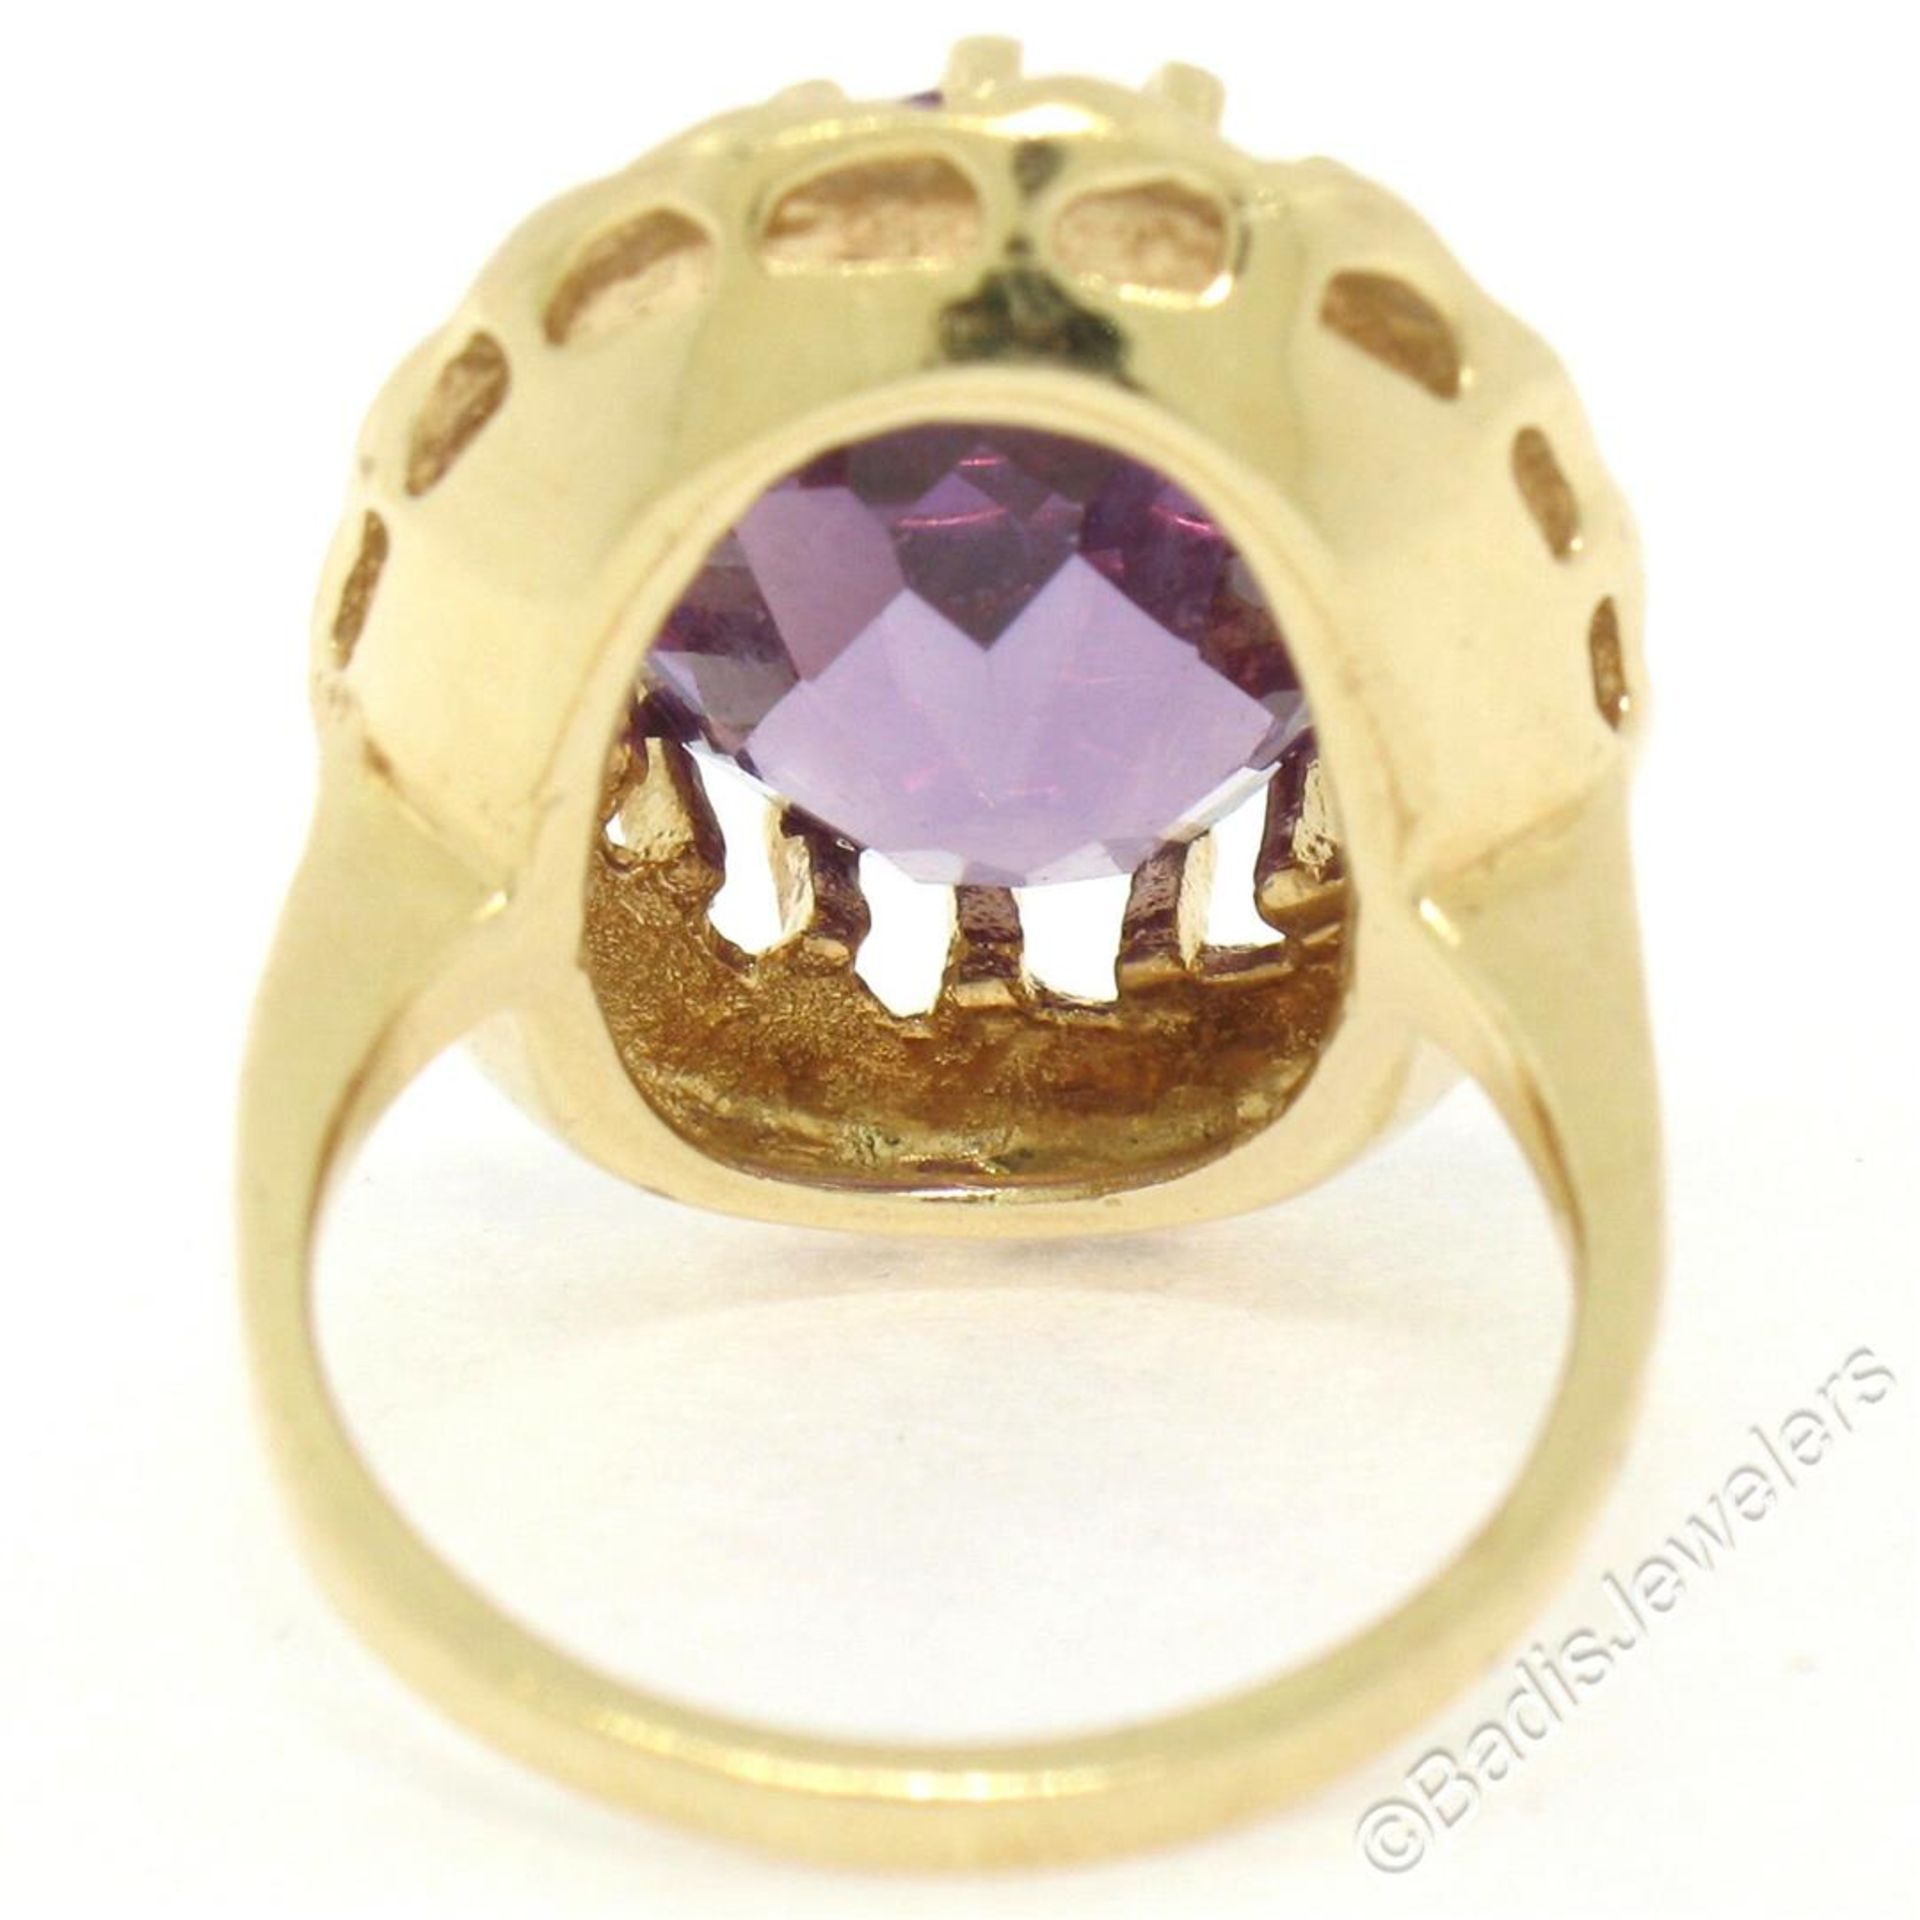 Vintage 14kt Yellow Gold Oval Synthetic Alexandrite Ring w/ Textured Halo - Image 8 of 9